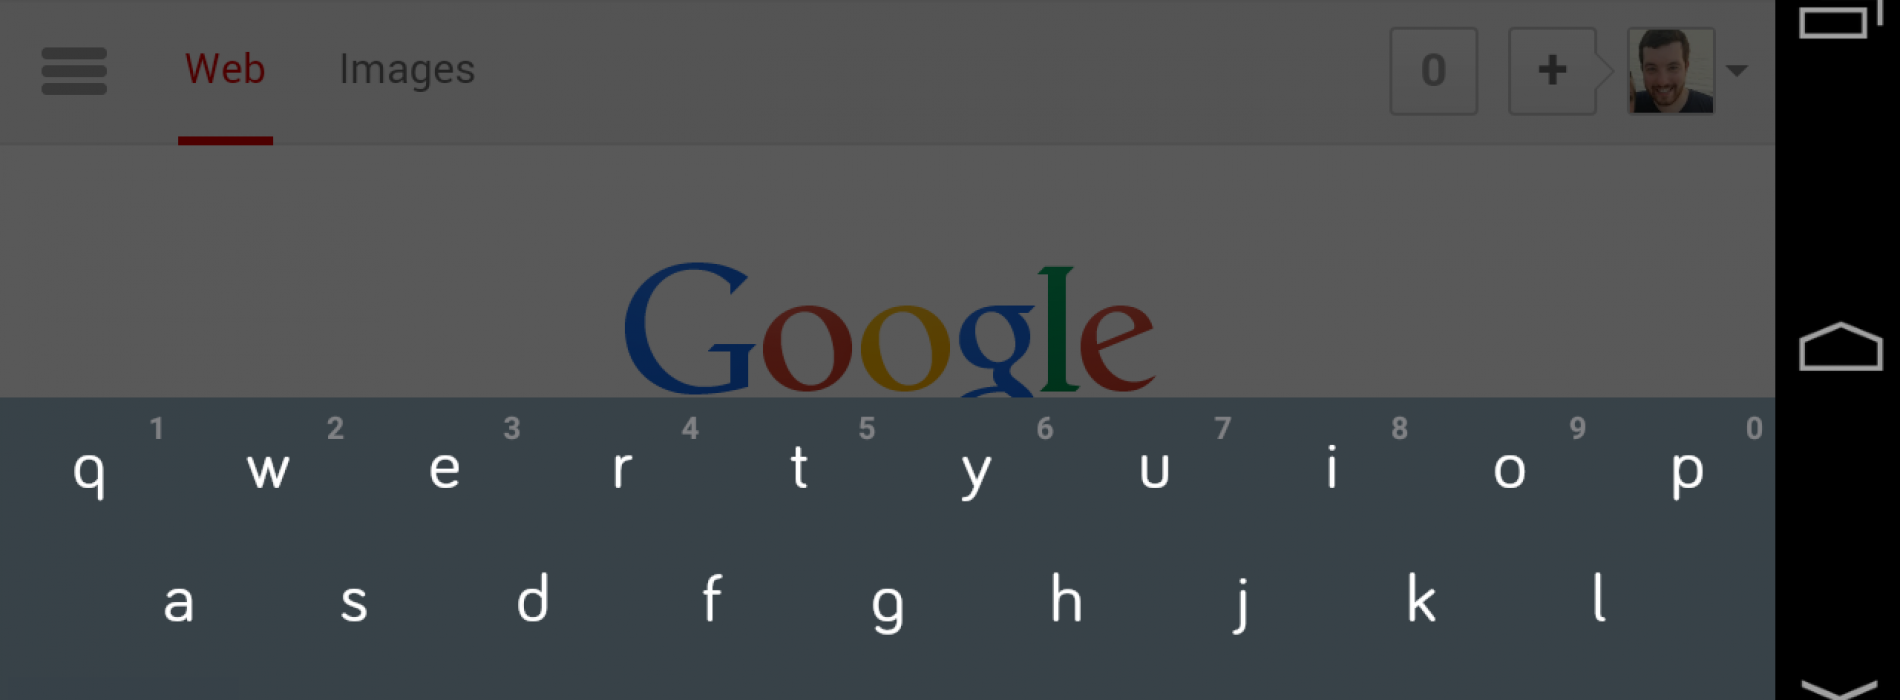 "Get the new Android ""L"" keyboard on your Android 4.0+ device (root NOT required)"